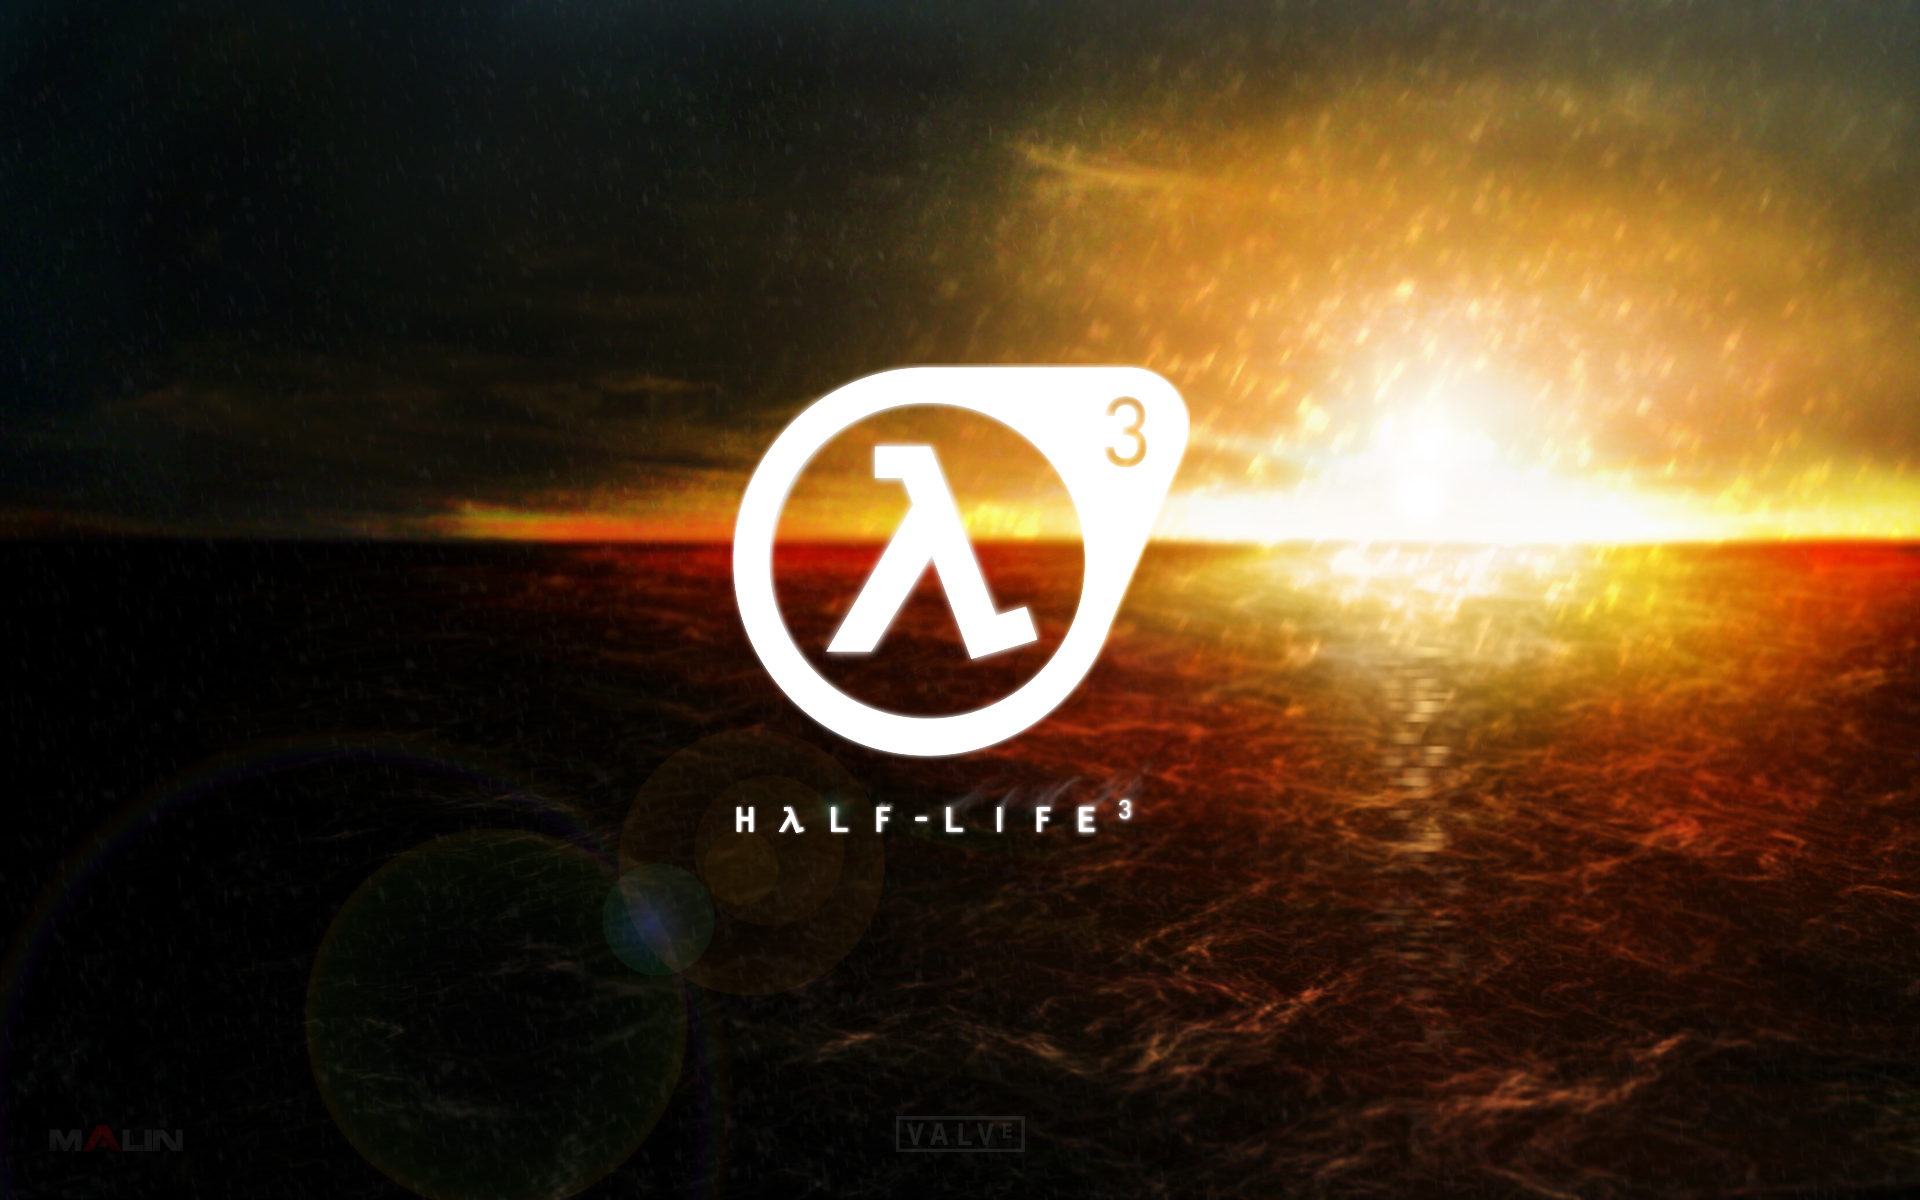 More Speculations and Allegations of Valves Half-Life3